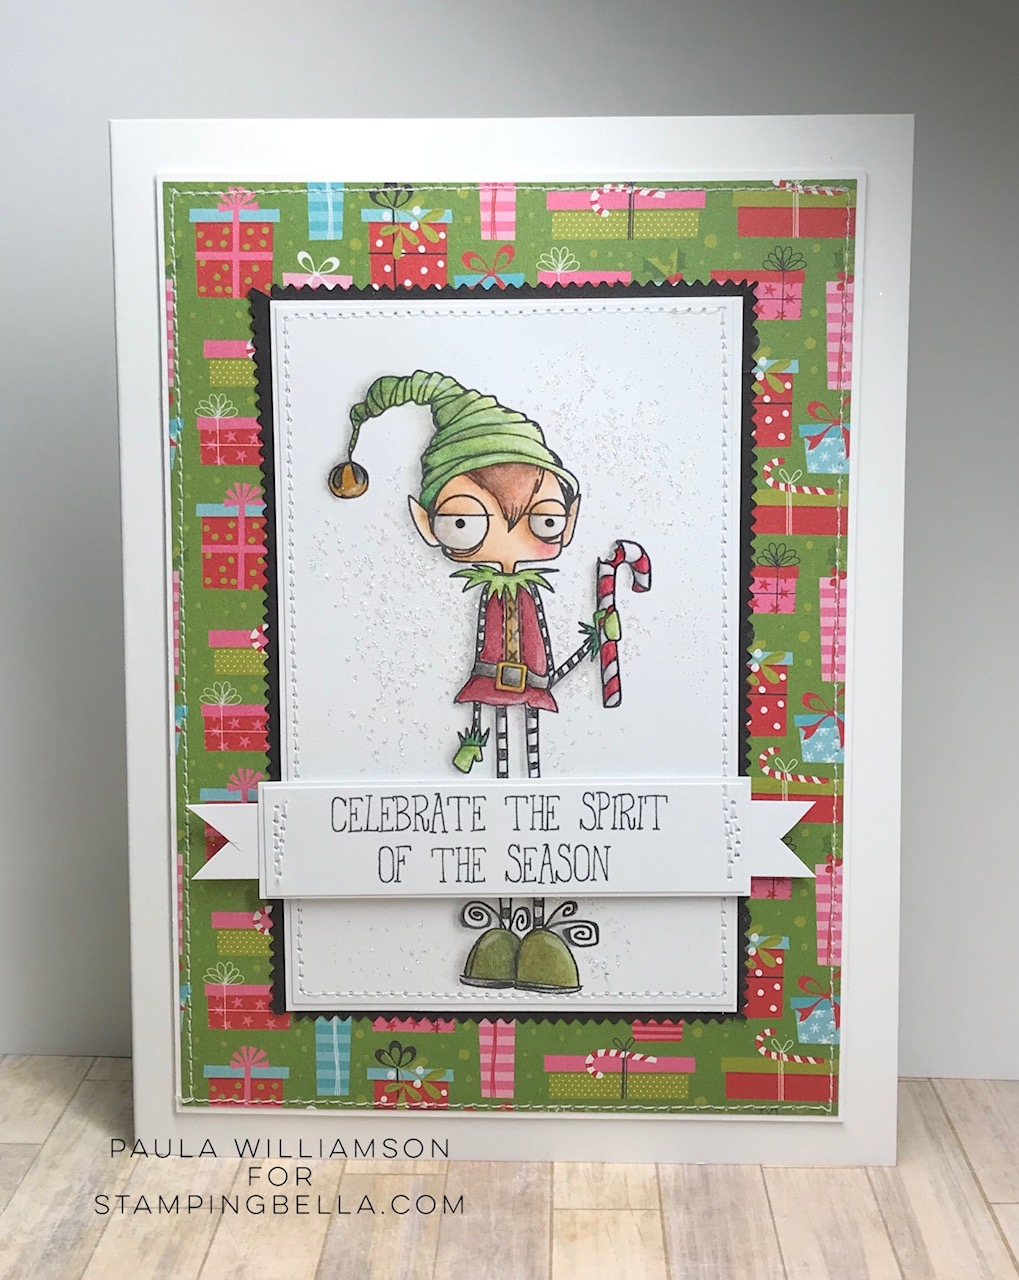 www.stampingbella.com: RUBBER STAMP USED: ODDBALL BOY ELF card by Paula Williamson